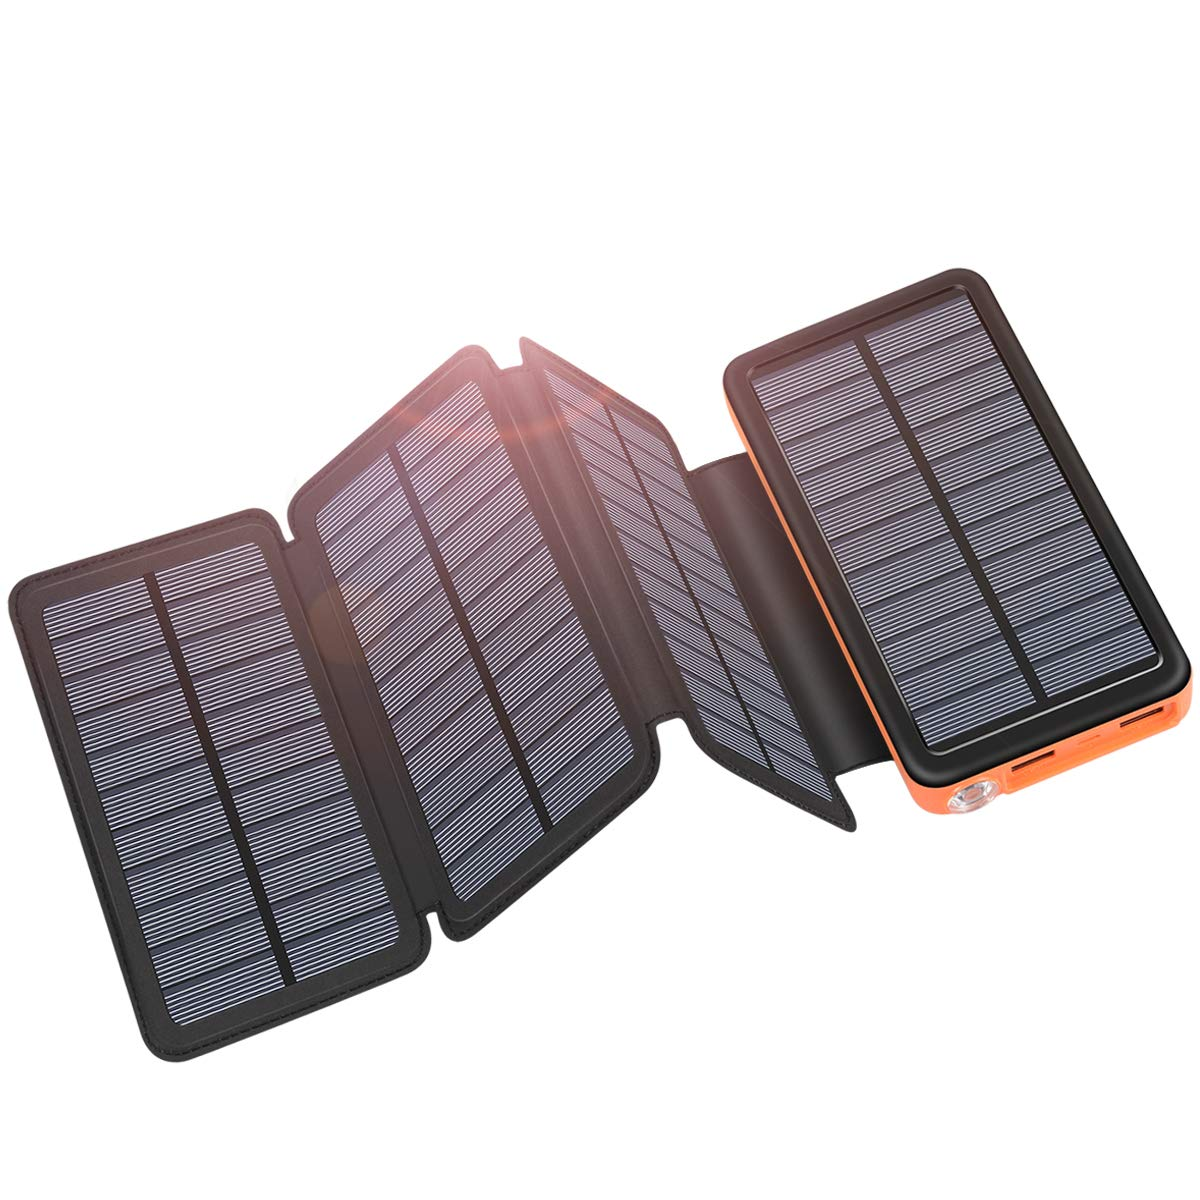 Solar Charger 25000mAh ADDTOP Portable Solar Power Bank with Type-C Input for Smart Phones, Ipad, Laptop and Outdoor Waterproof by ADDTOP